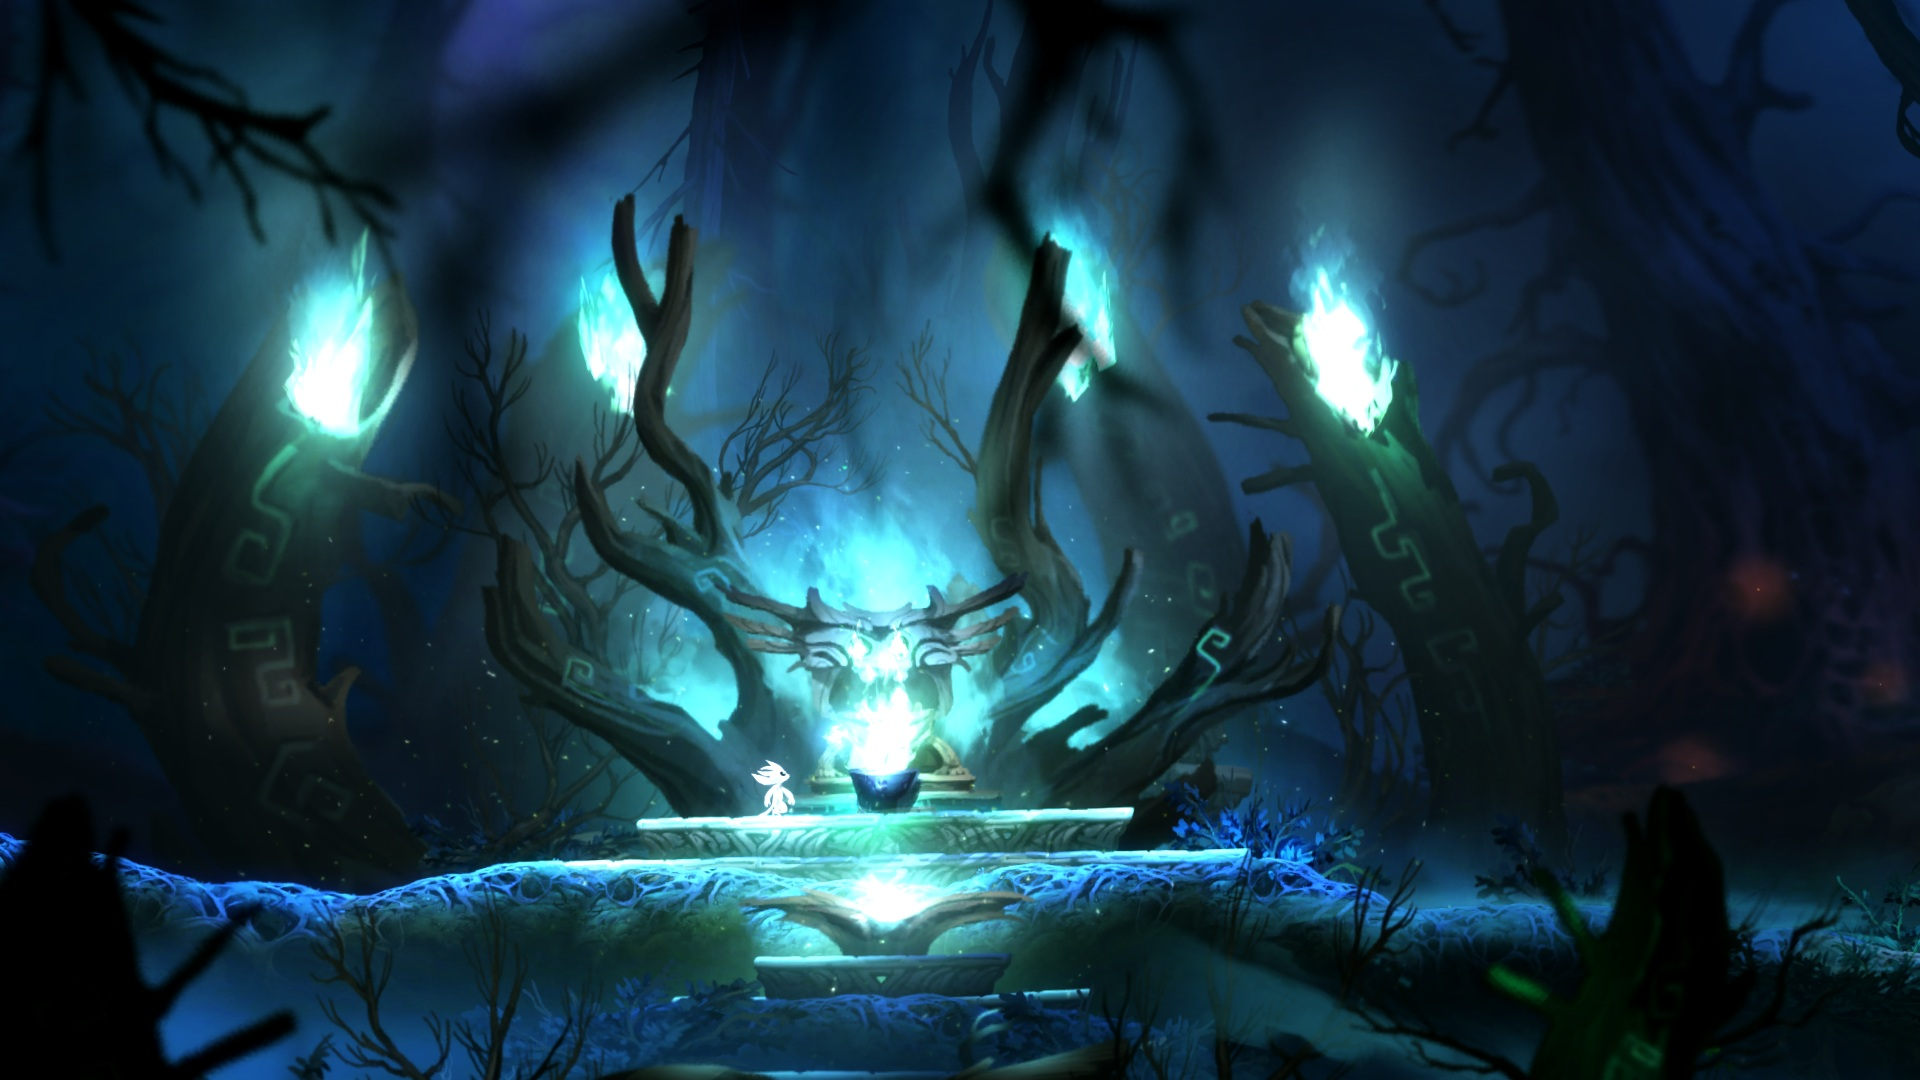 Ori And The Blind Forest Wallpaper Hd Posted By Zoey Simpson